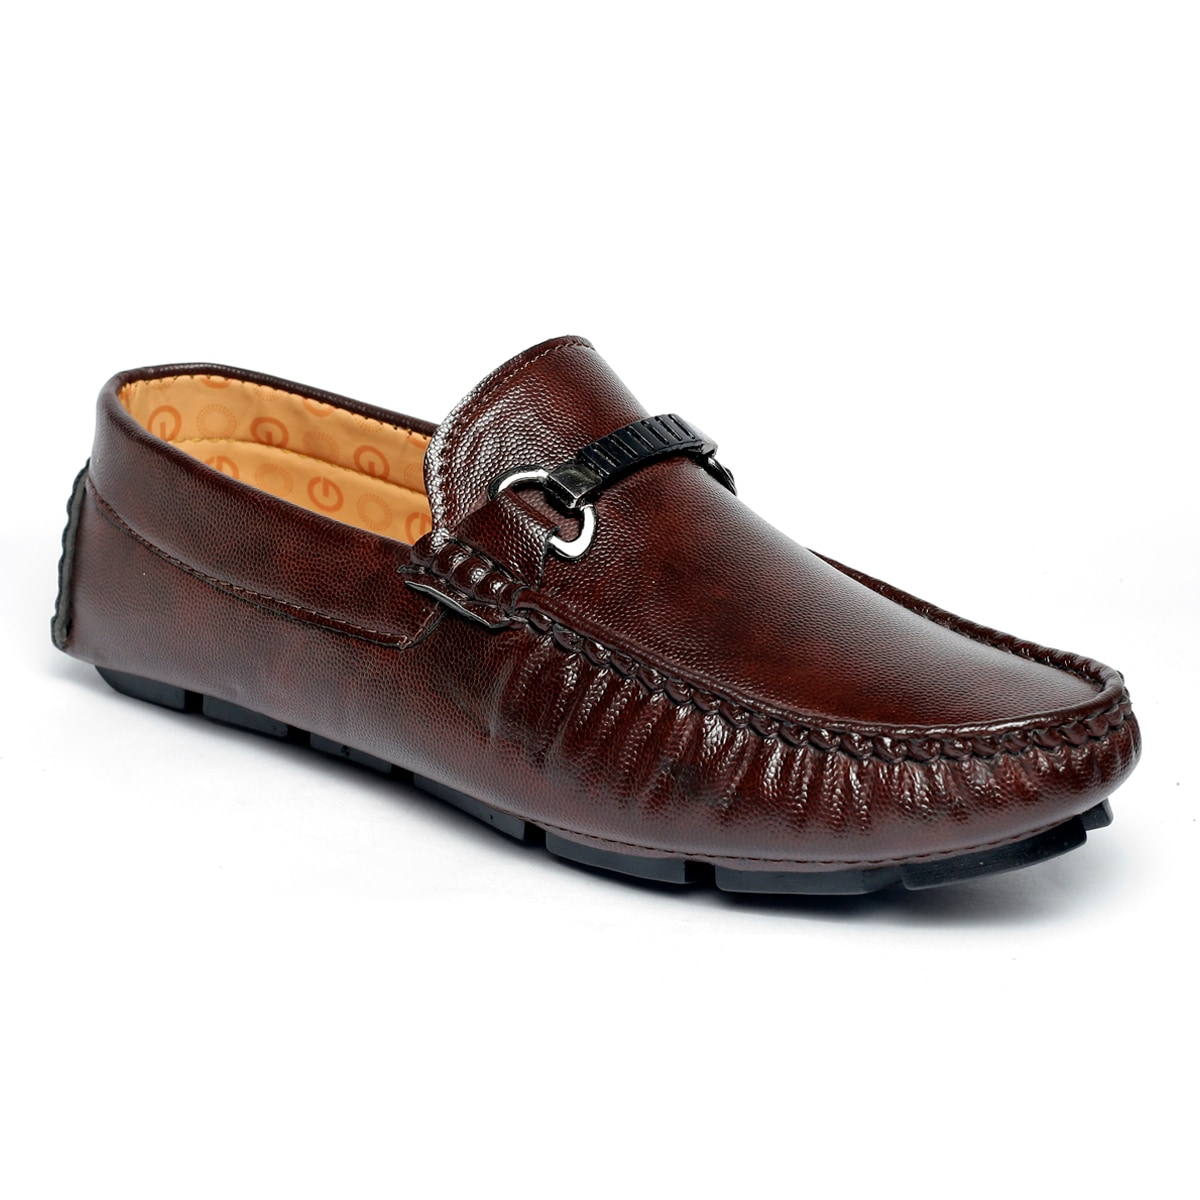 JK PORT COMFORTABLE, FASHIONABLE AND TRENDY LOAFERS JKPLF052DBRN (BROWN,6-10,8 PAIR)